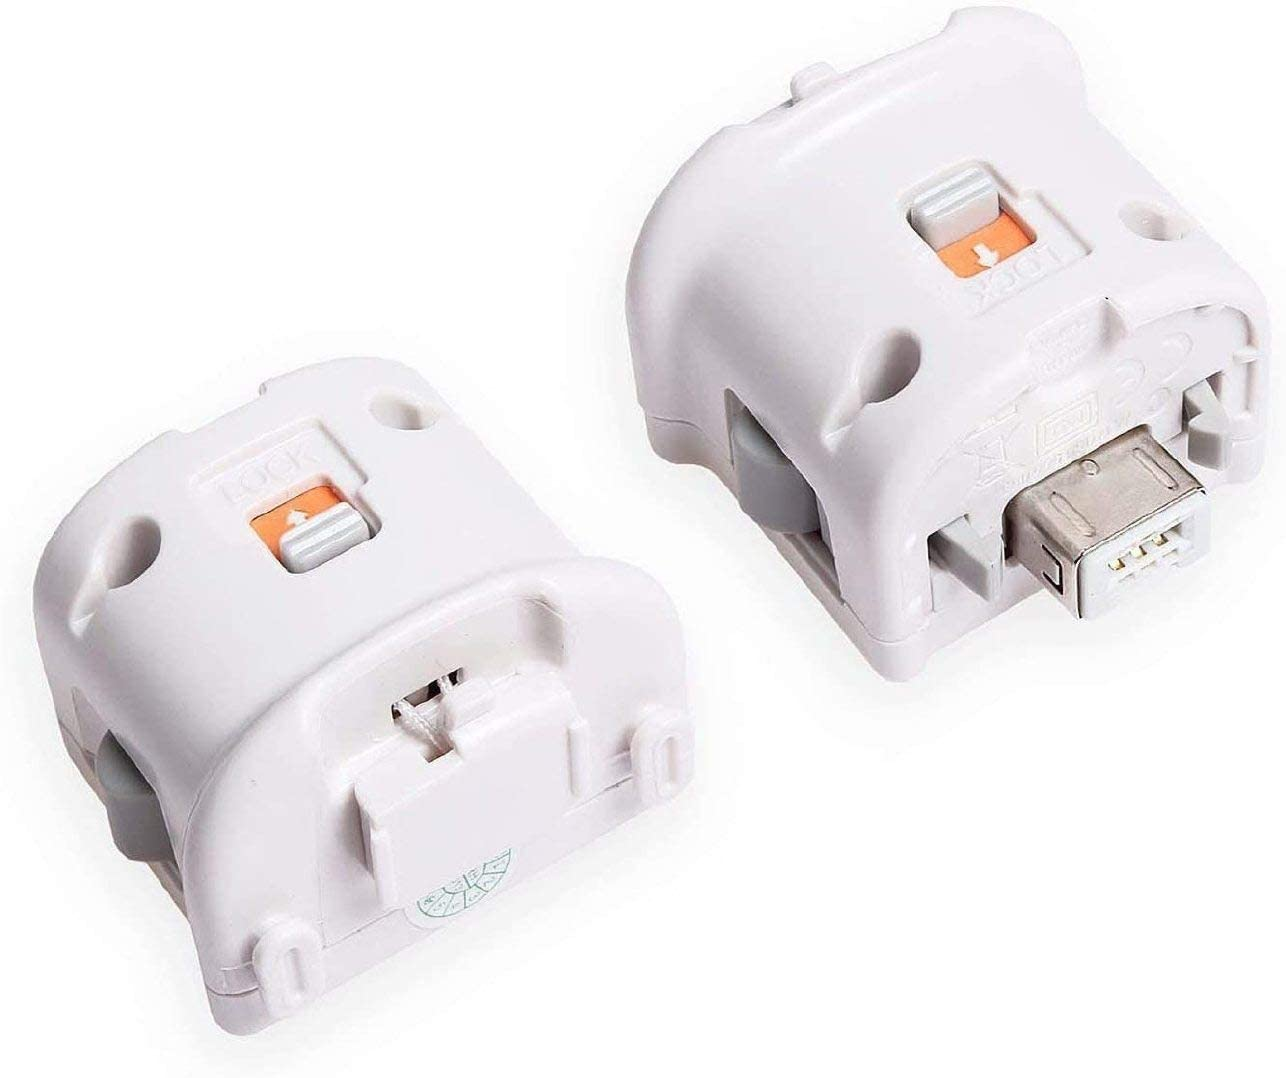 Anokey Wii Motion Plus Adapter for Nintendo Wii Remote Controller - 2 Set White